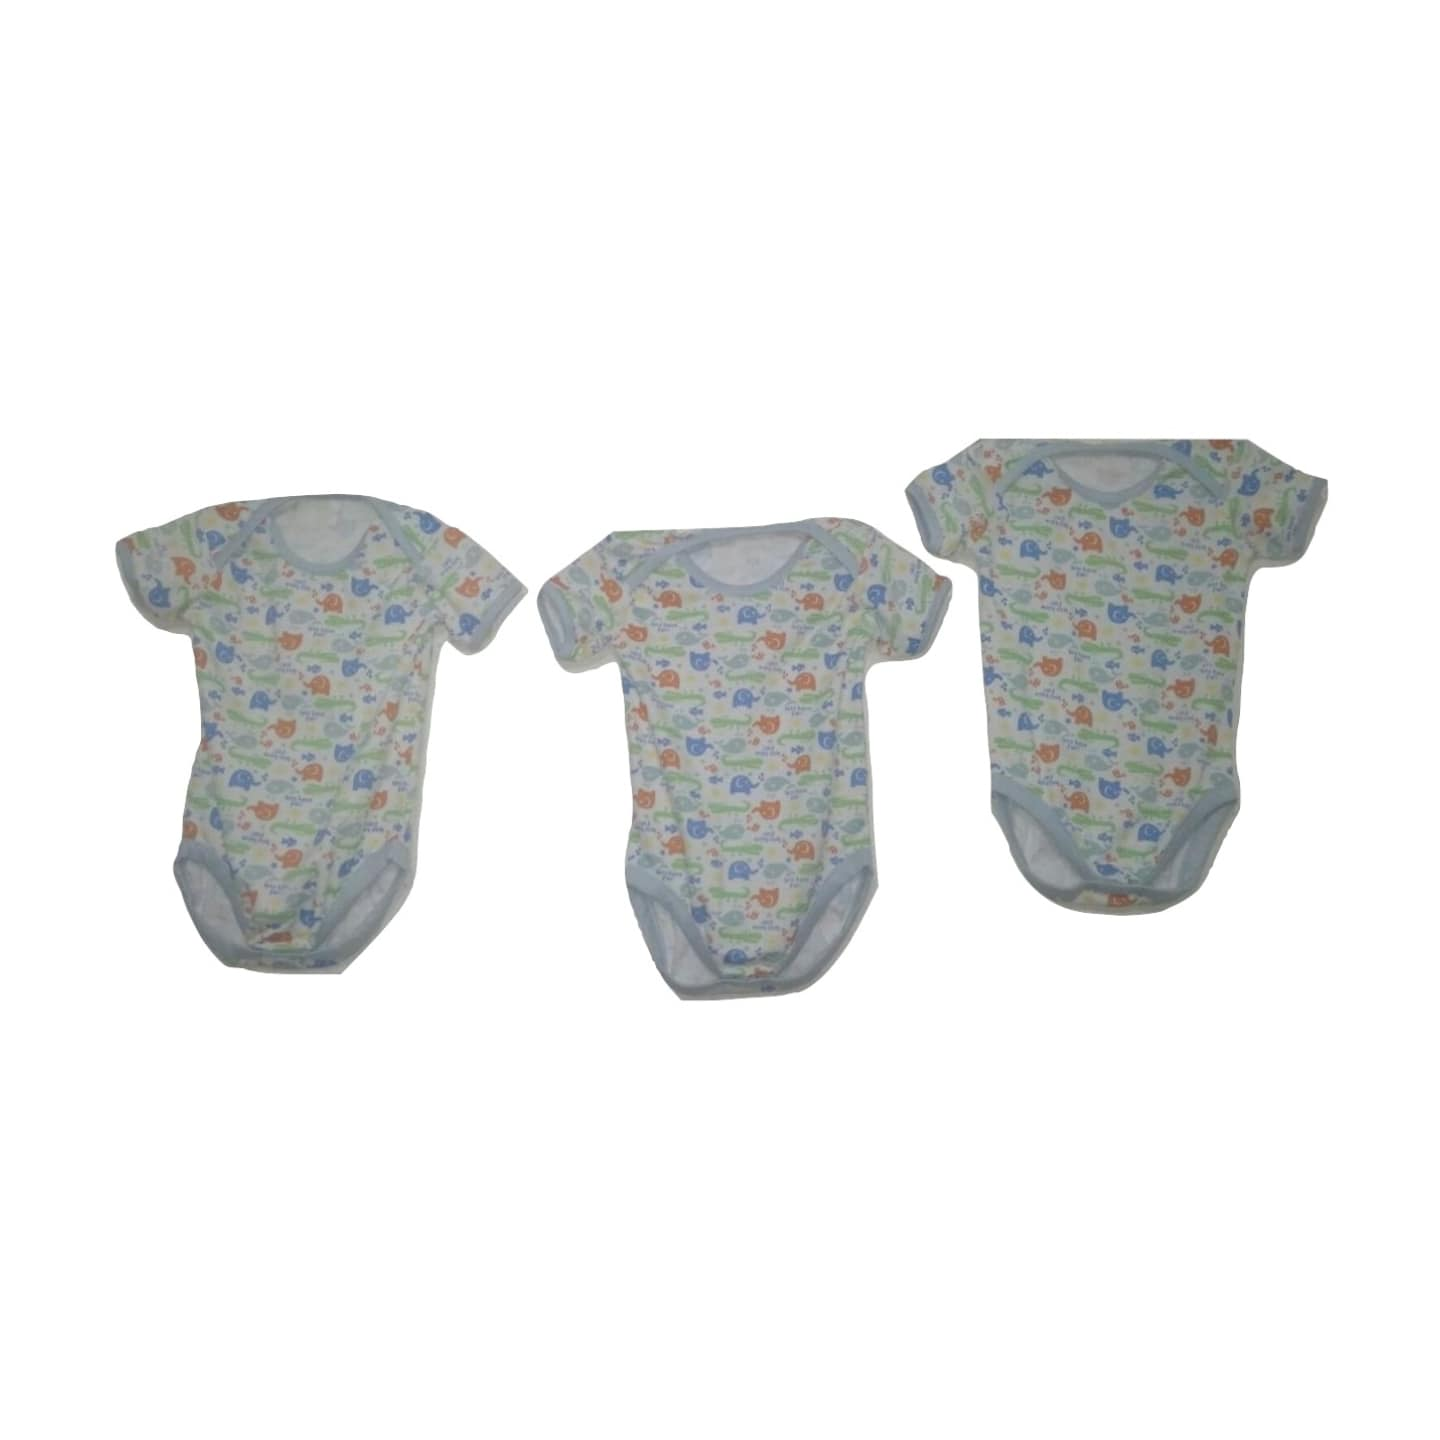 Little Elephant Design Bodysuit - 3 Piece Set - Stockpoint Apparel Outlet